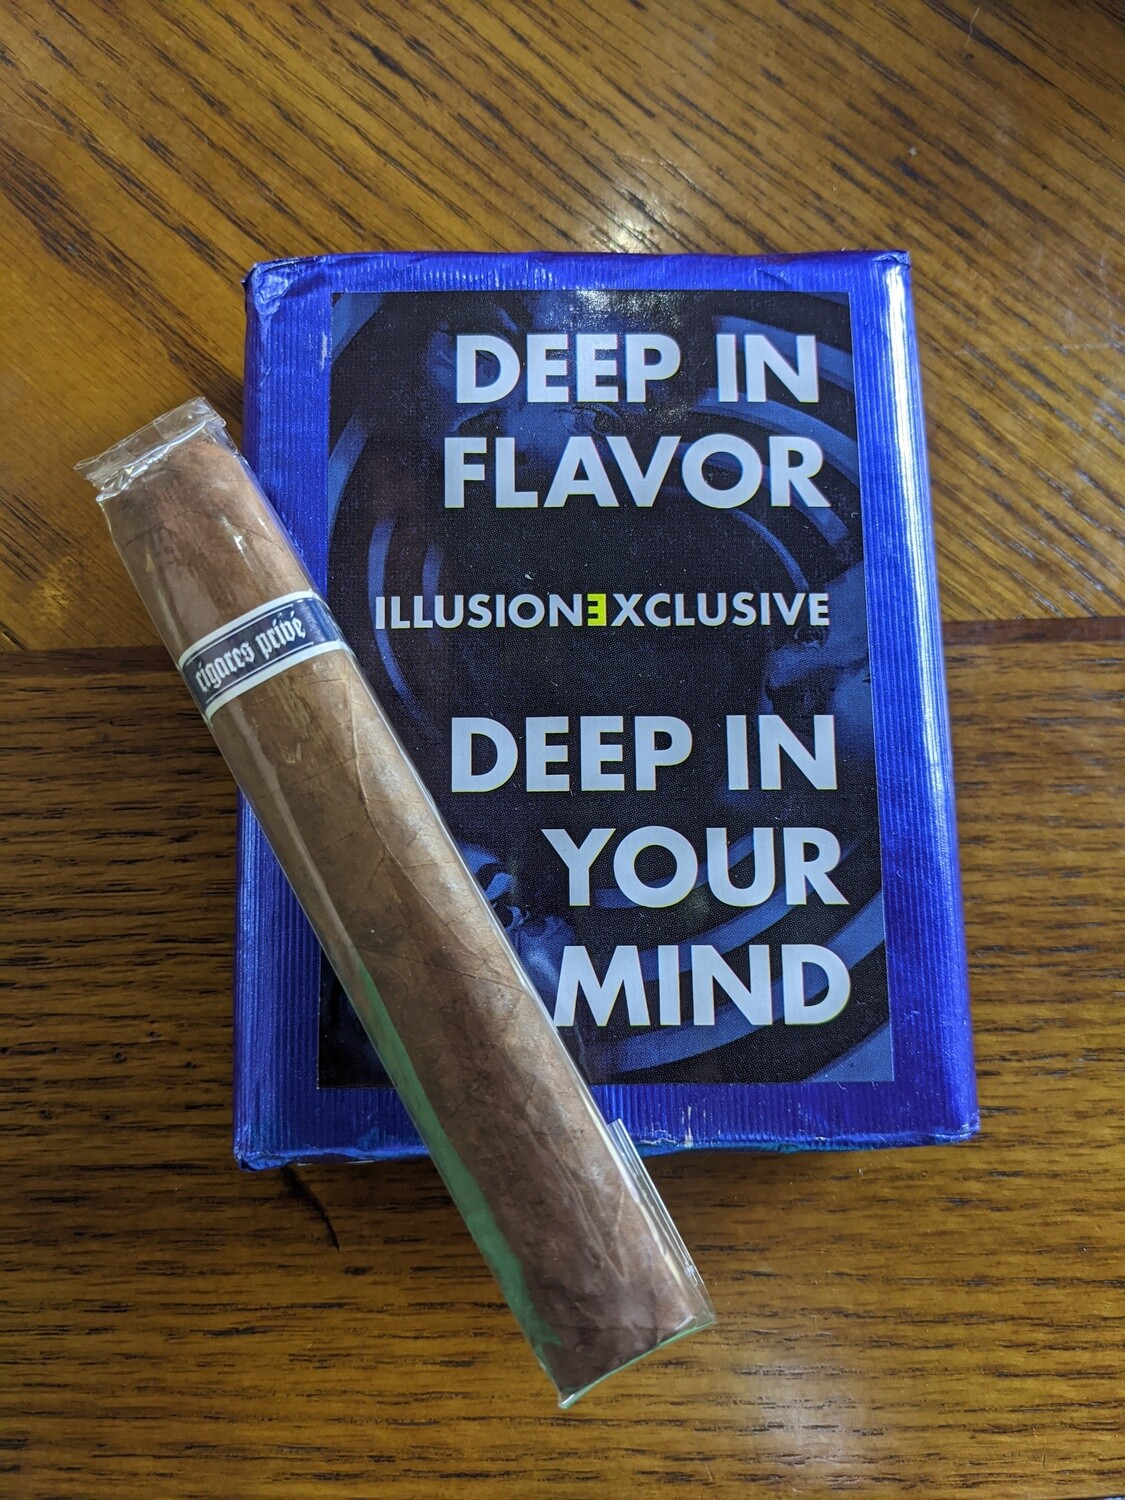 Illusione PCA 20 Exclusive 5 1/2 X 56 Single Cigar